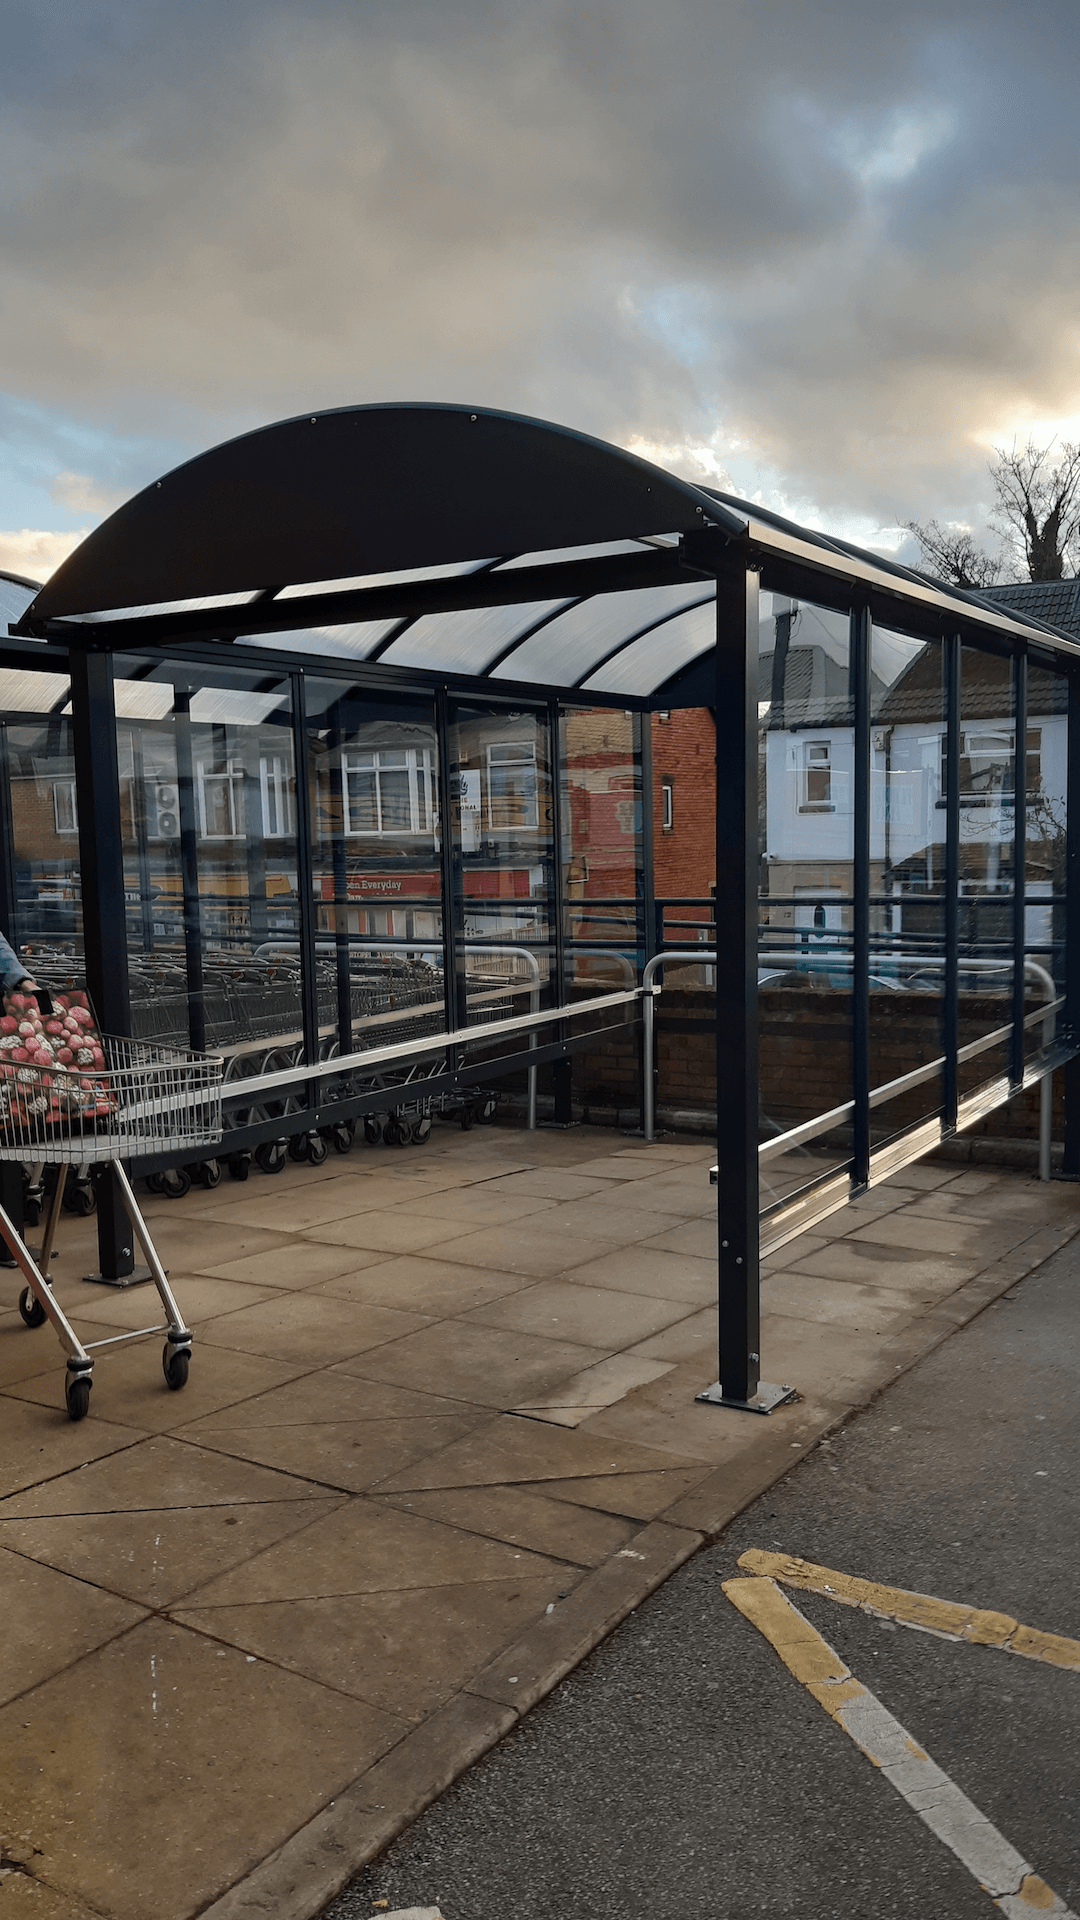 aldi – various stores – wet weather queuing solutions 1